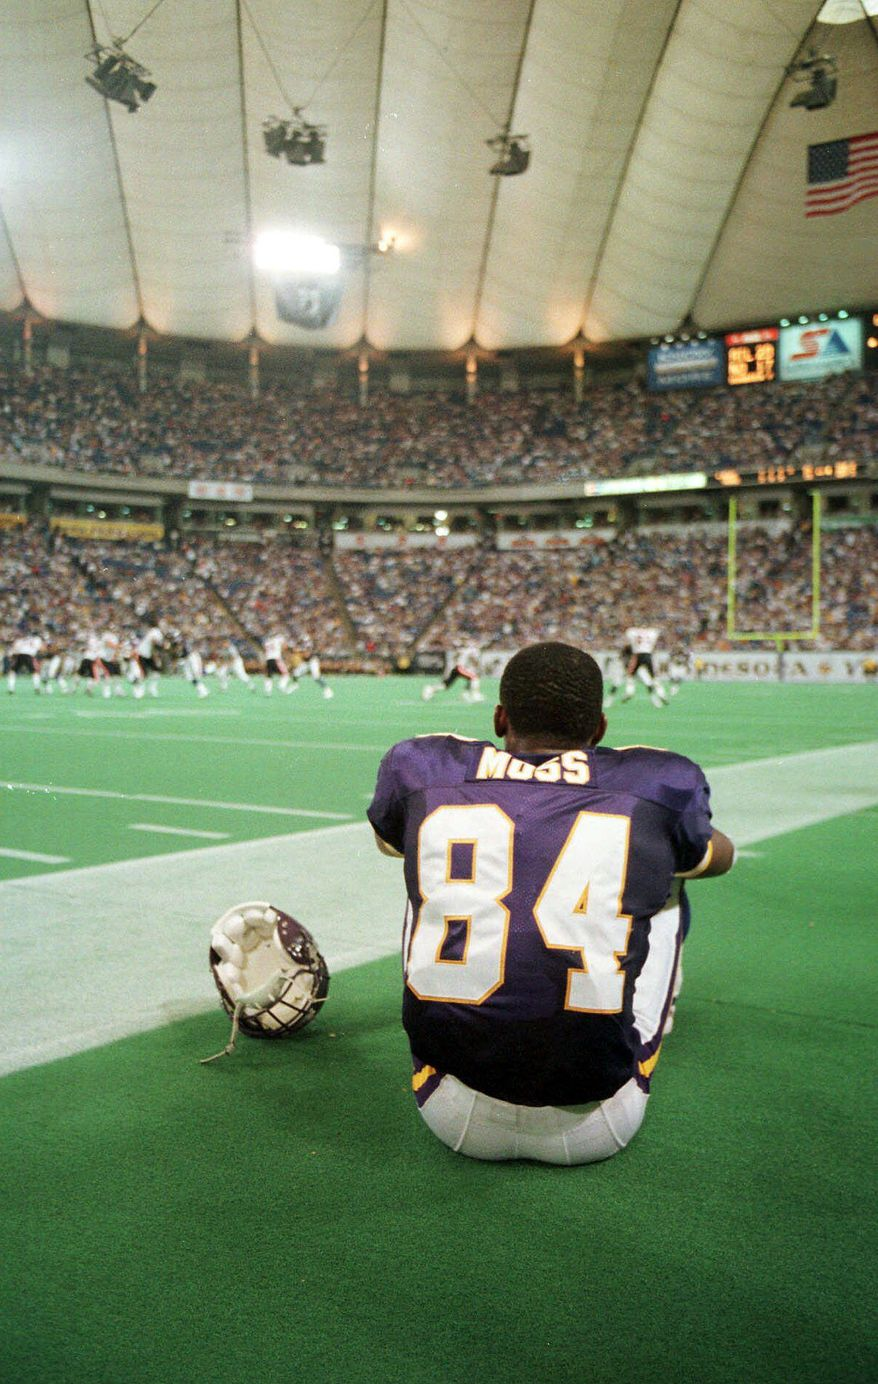 ASSOCIATED PRESS Wide receiver Randy Moss became one of the NFL's most polarizing players during his career. Last season, he played with New England, Minnesota and Tennessee, catching just six passes in eight games with the Titans.